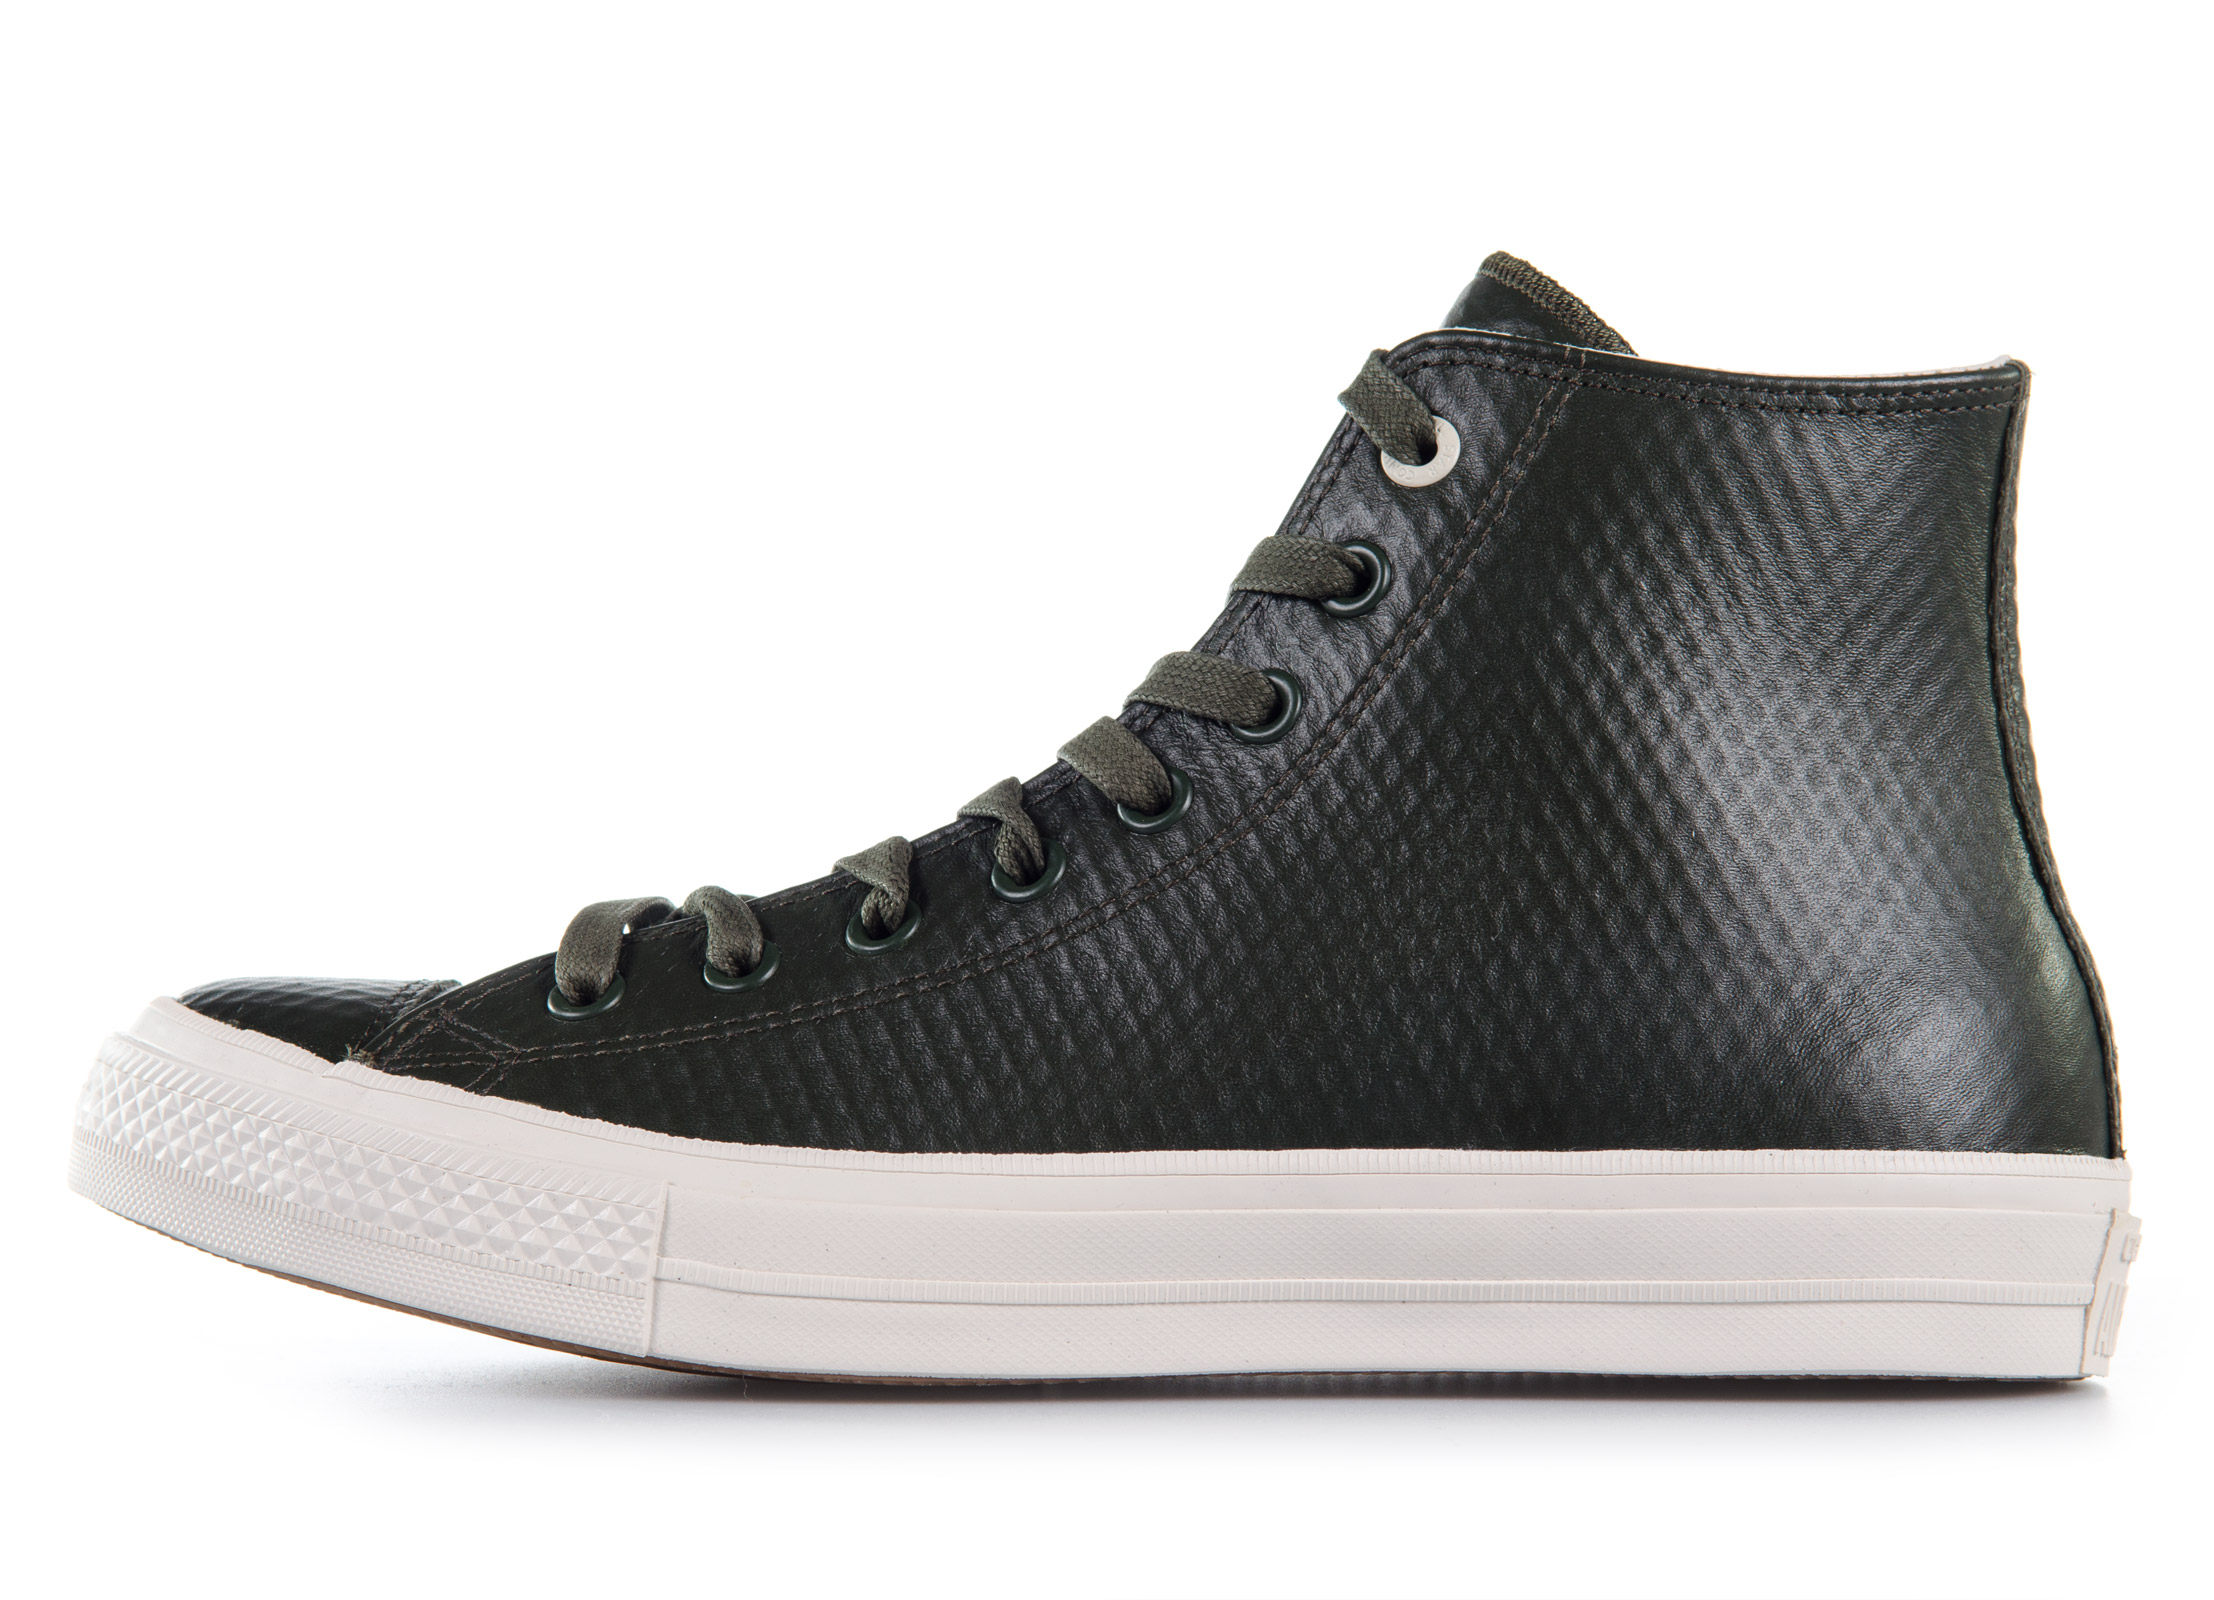 Converse All Star Chuck II Mesh Backed Leather High Top 153554C Χακί